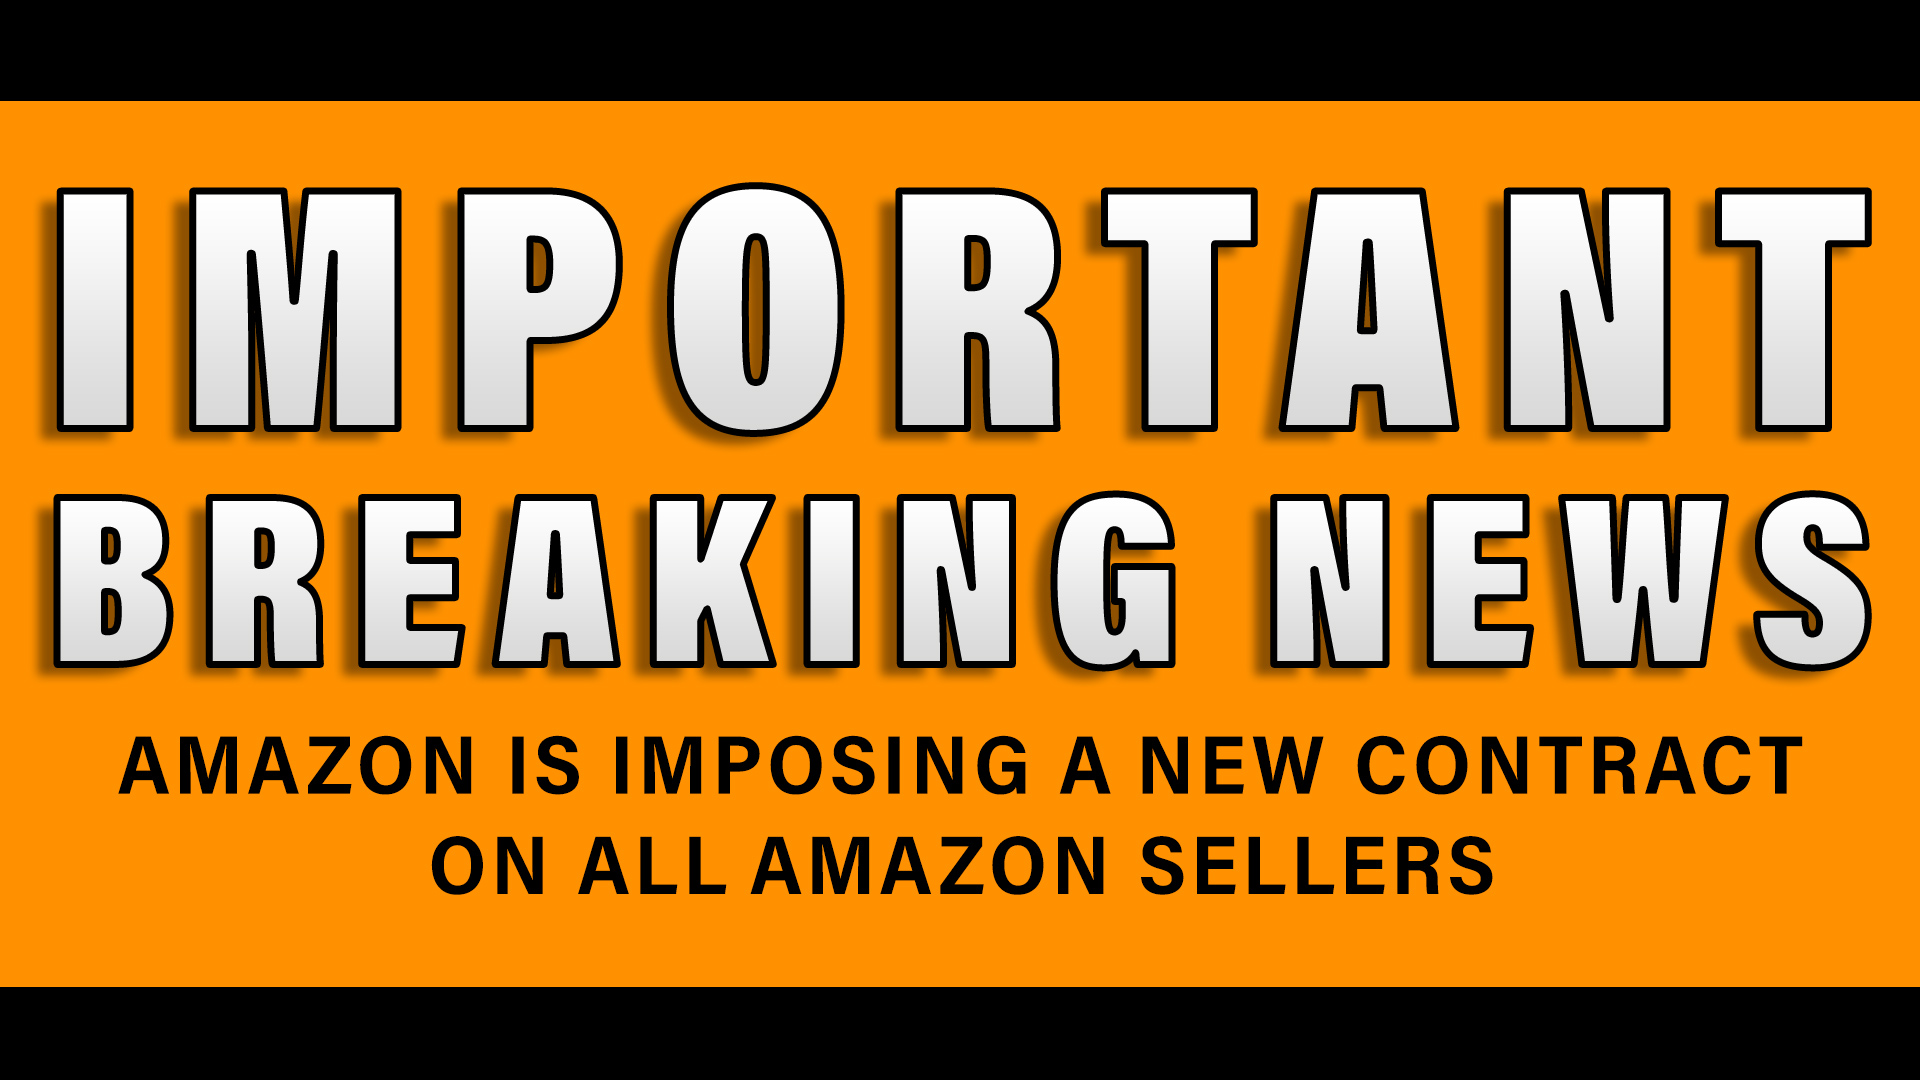 Amazon is imposing a new contract on ALL Amazon Sellers